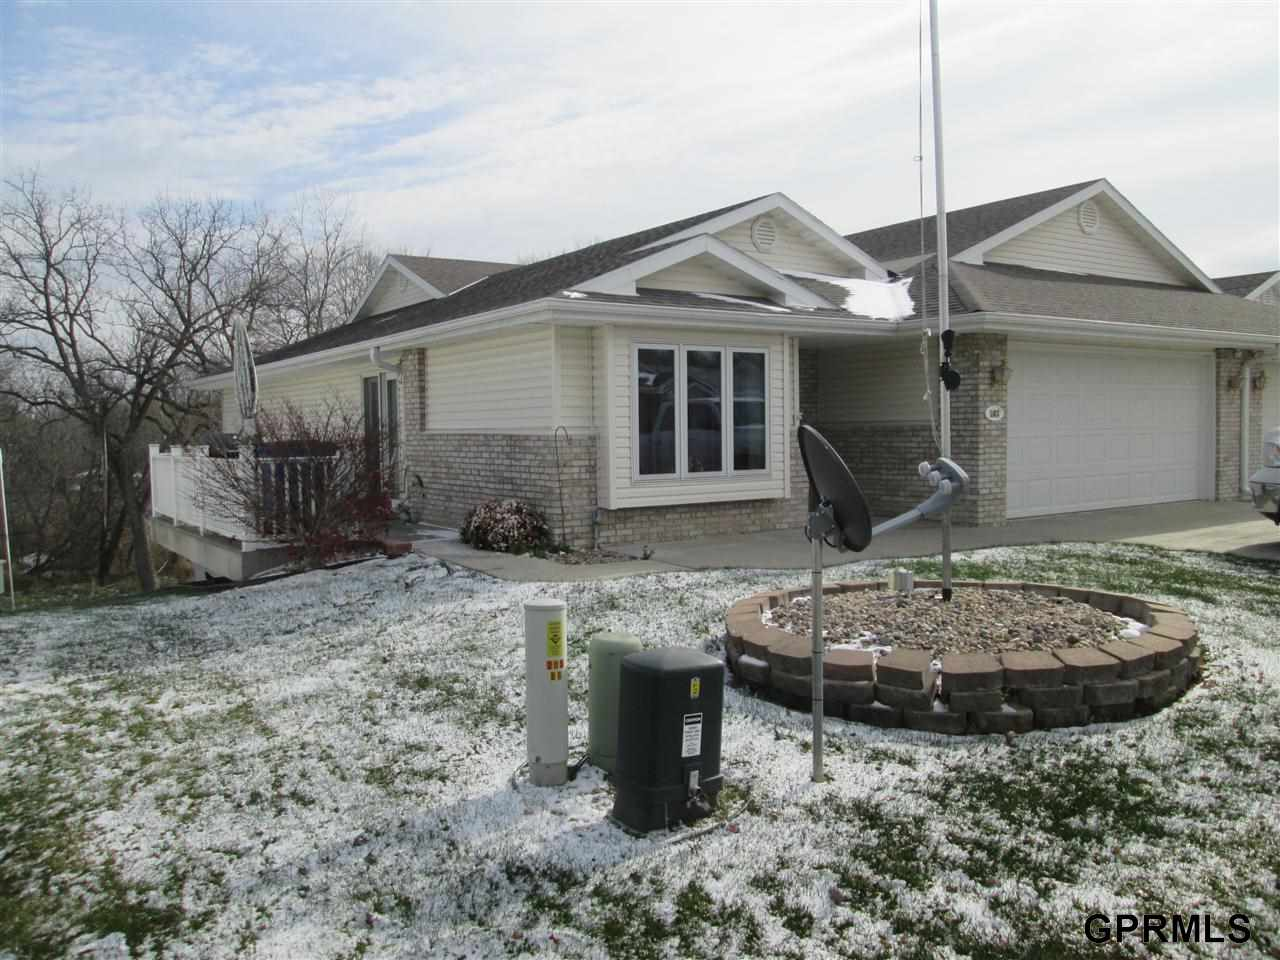 Rental Homes for Rent, ListingId:30673318, location: 103 E DEER LANE Plattsmouth 68048